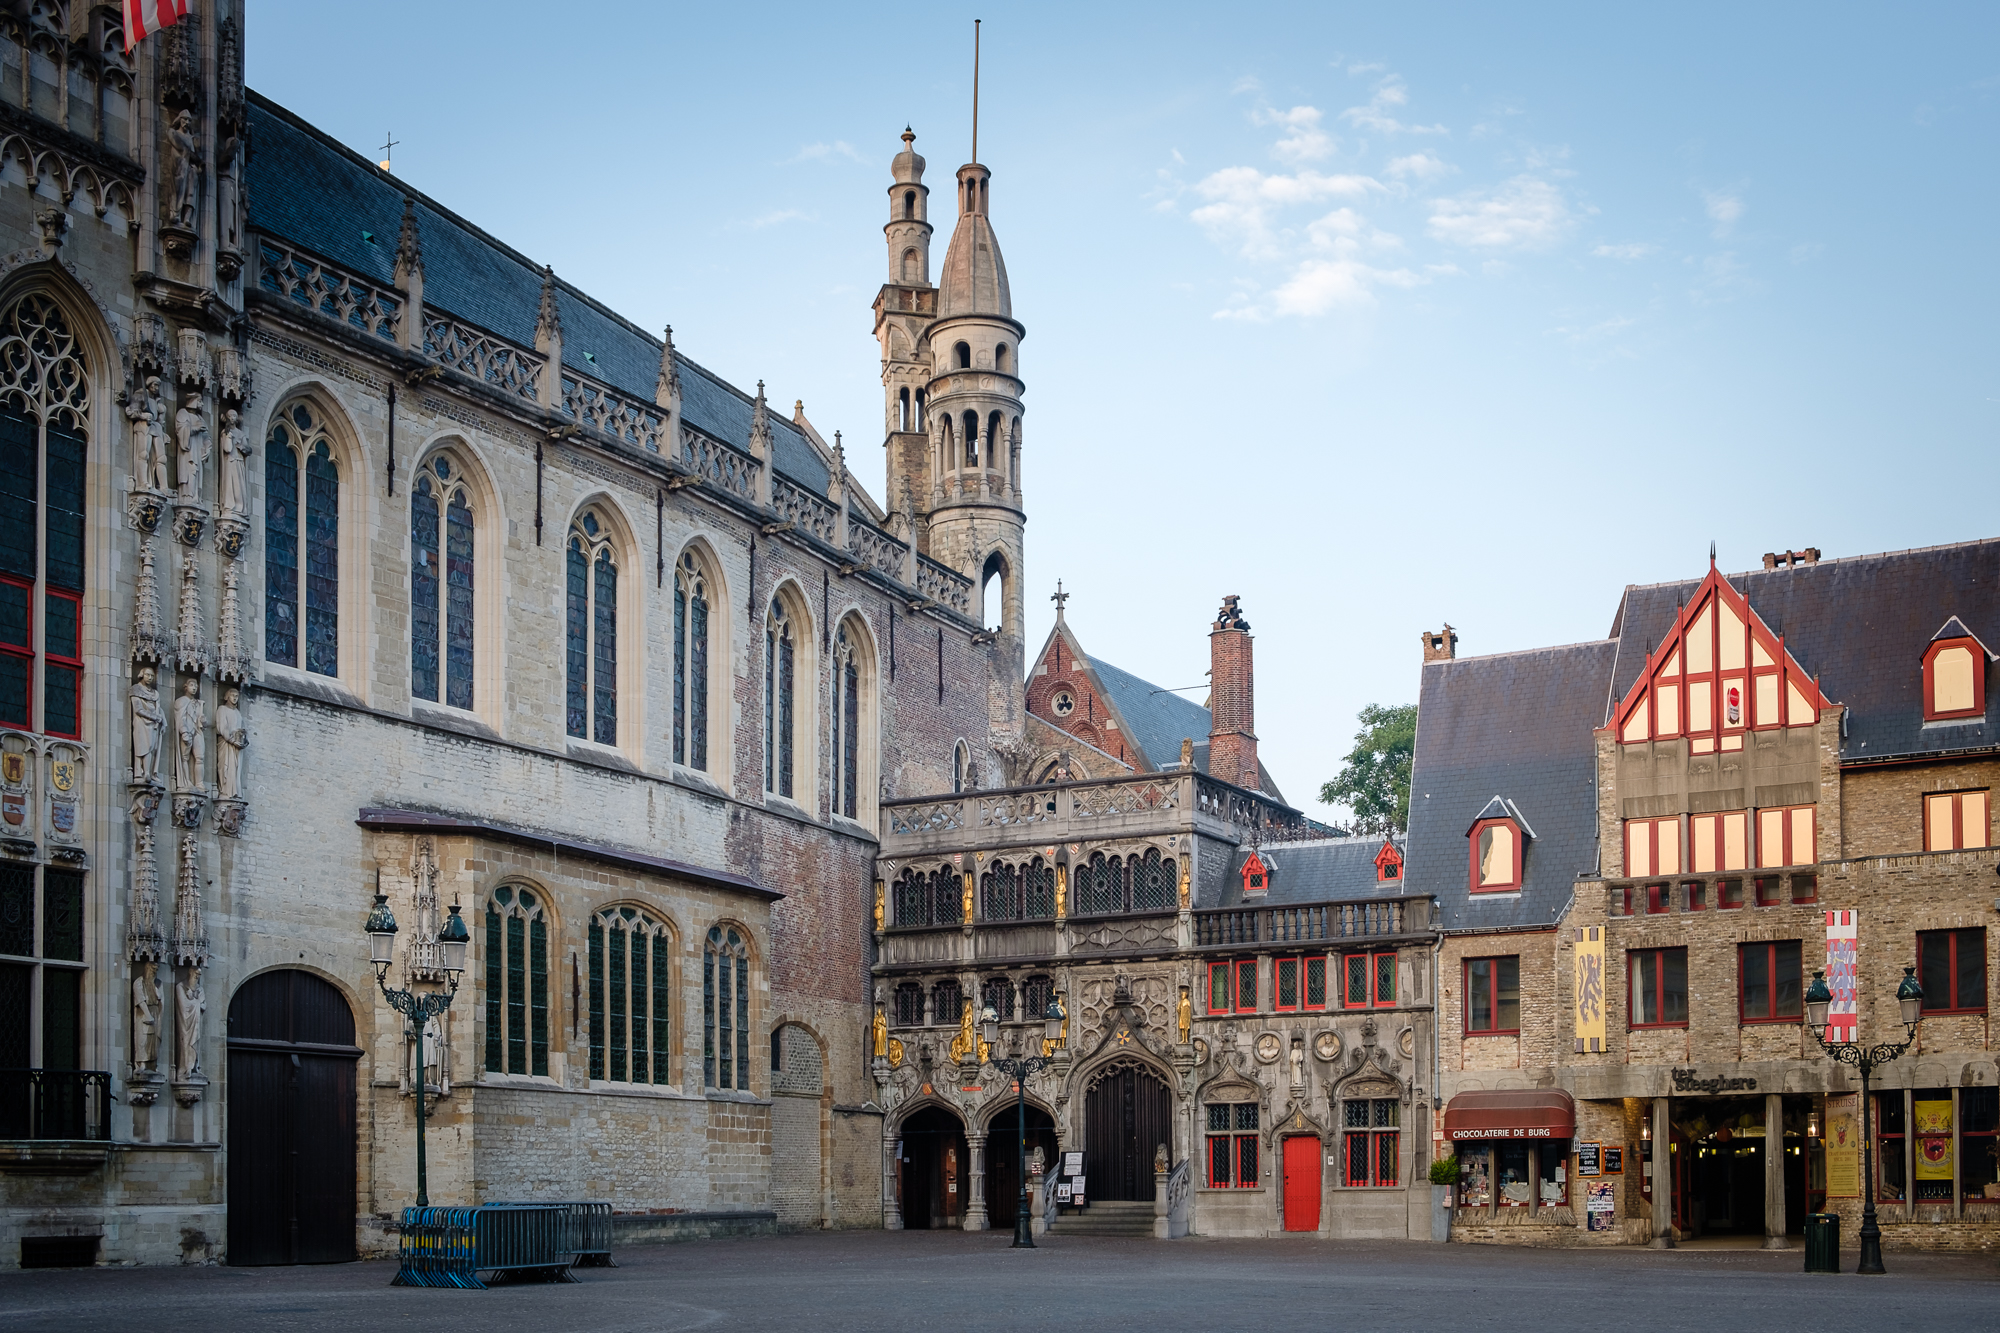 A photo of Burg Square in Bruges, Belgium taken by Trevor Sherwin